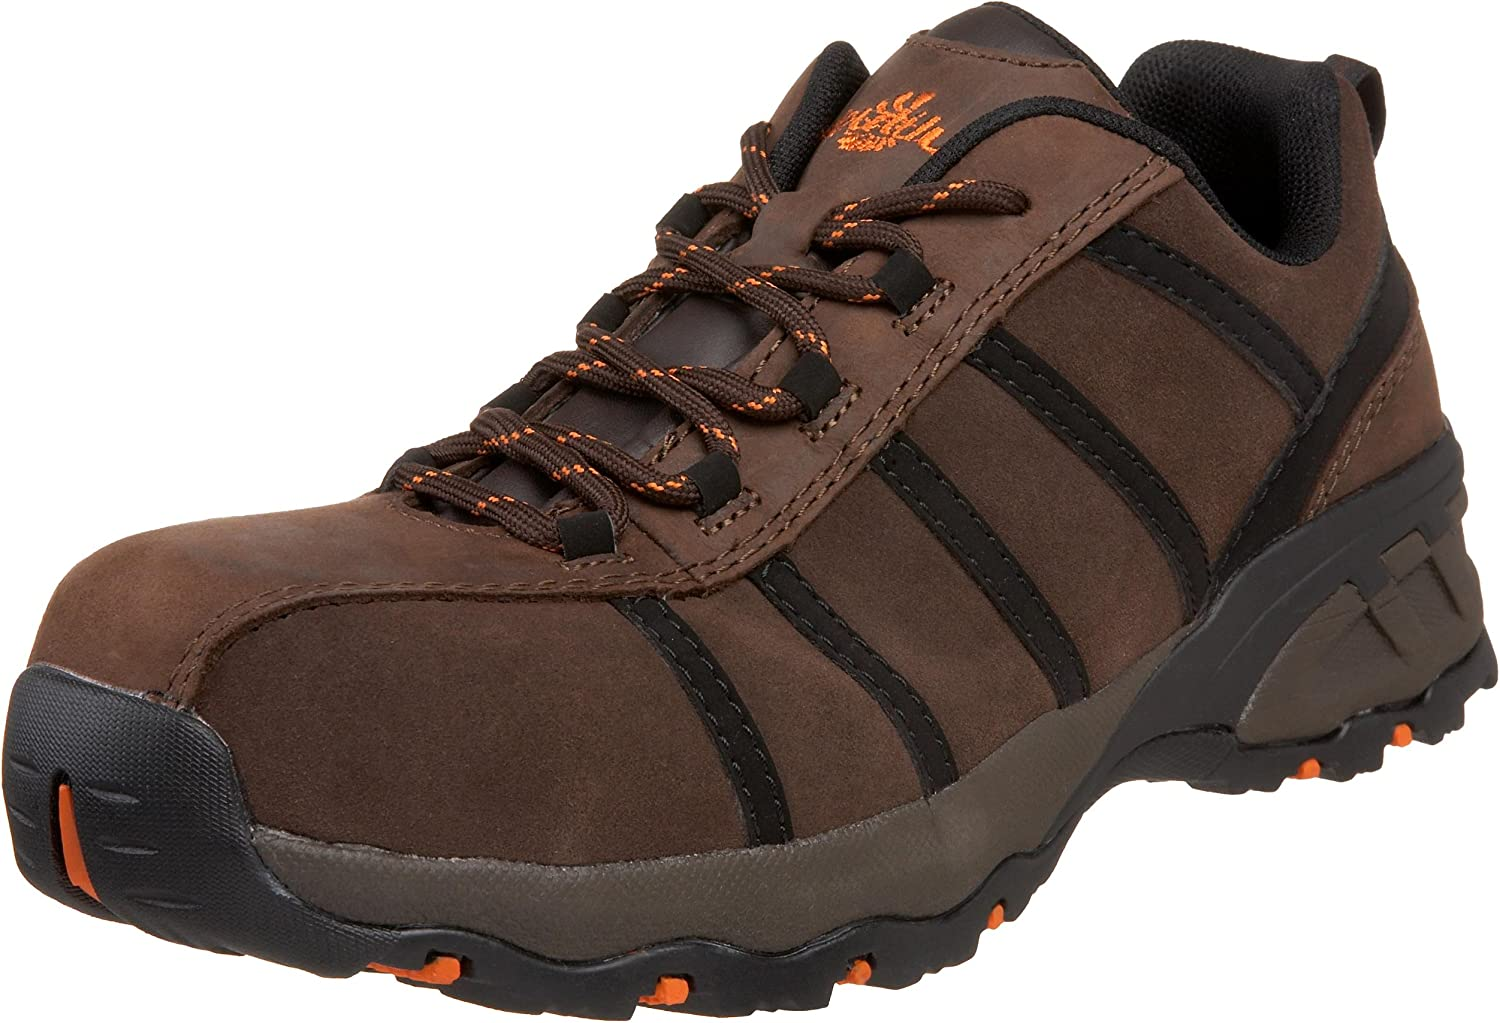 Nautilus Safety Footwear Men's N1708 Composite Toe Sneaker